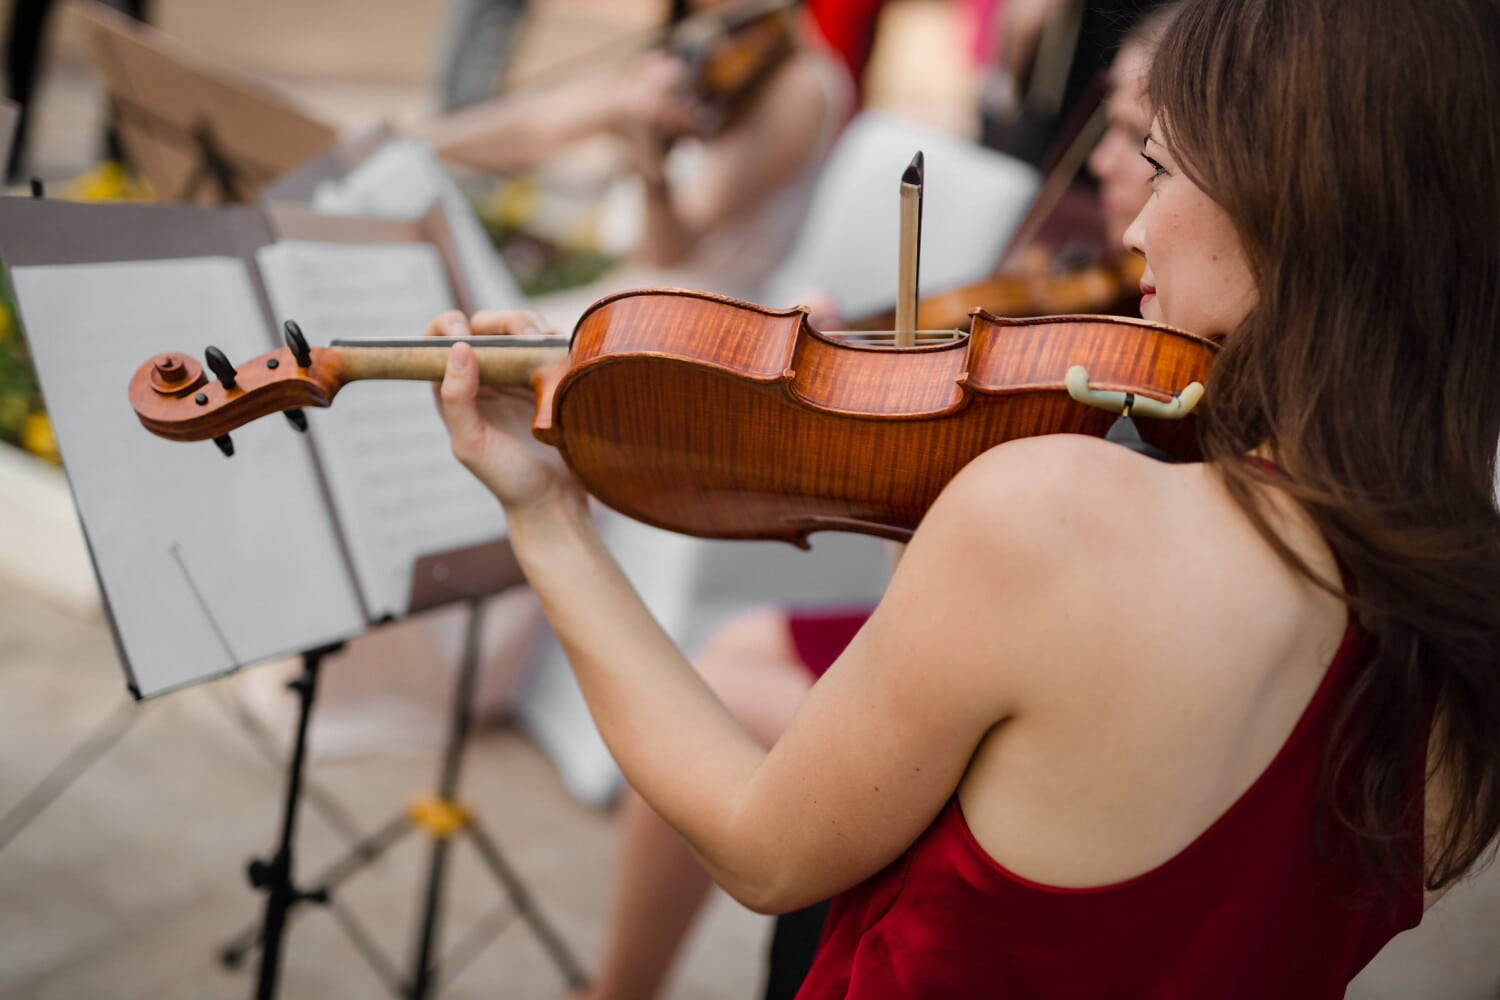 side view, young woman, portrait, gorgeous, playing, harmony, violin, music, musician, instrument